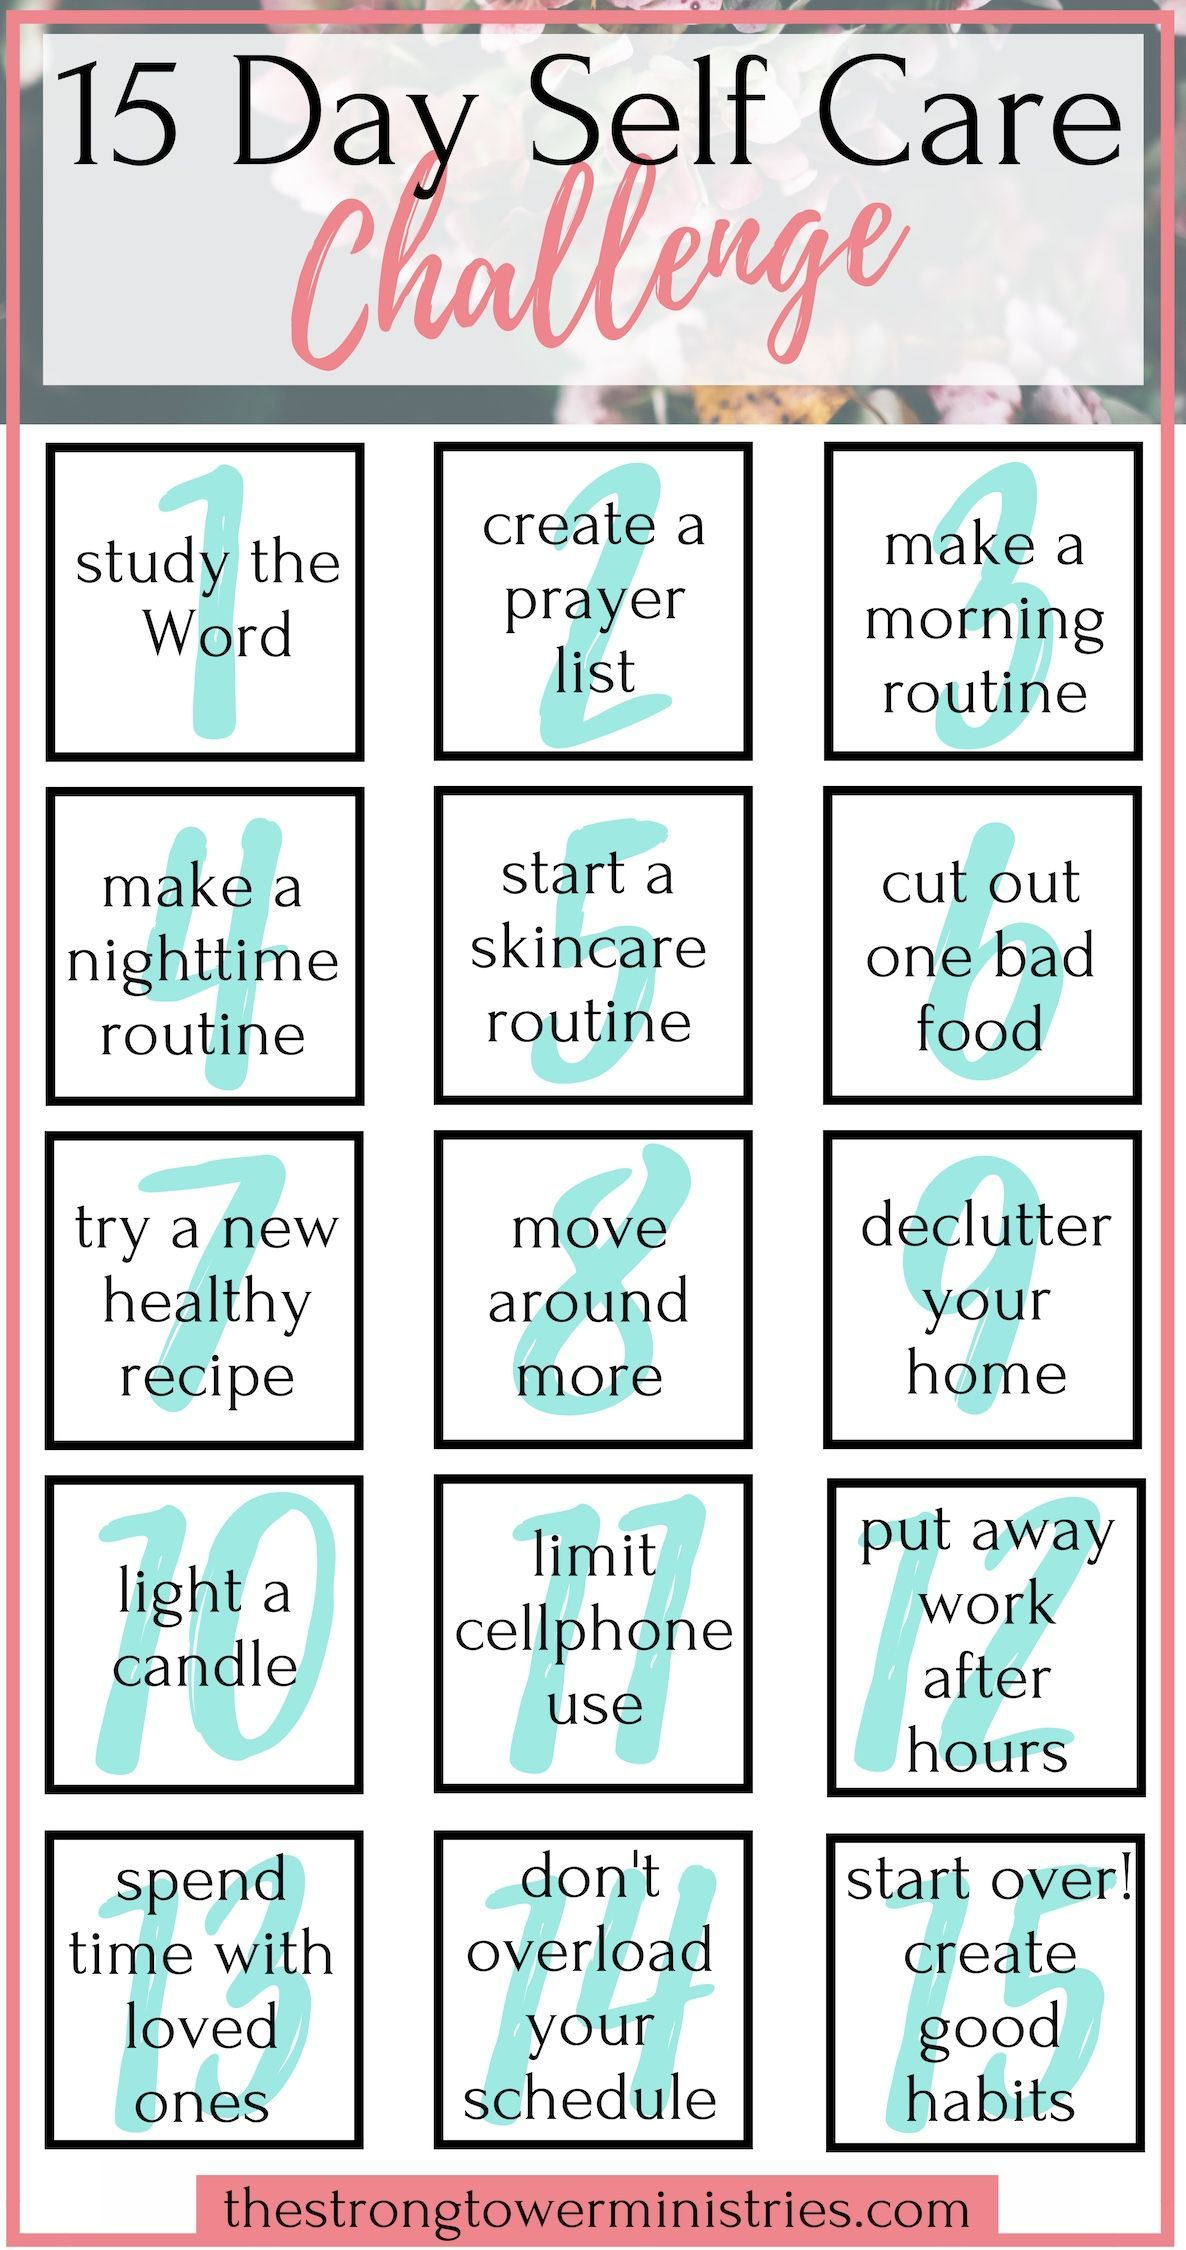 15 Day Self Care Challenge Healthy Routine Self Love Christian Blogs For Women Fall Self Care Chal Encouragement Quotes Christian Blogs Healthy Routine